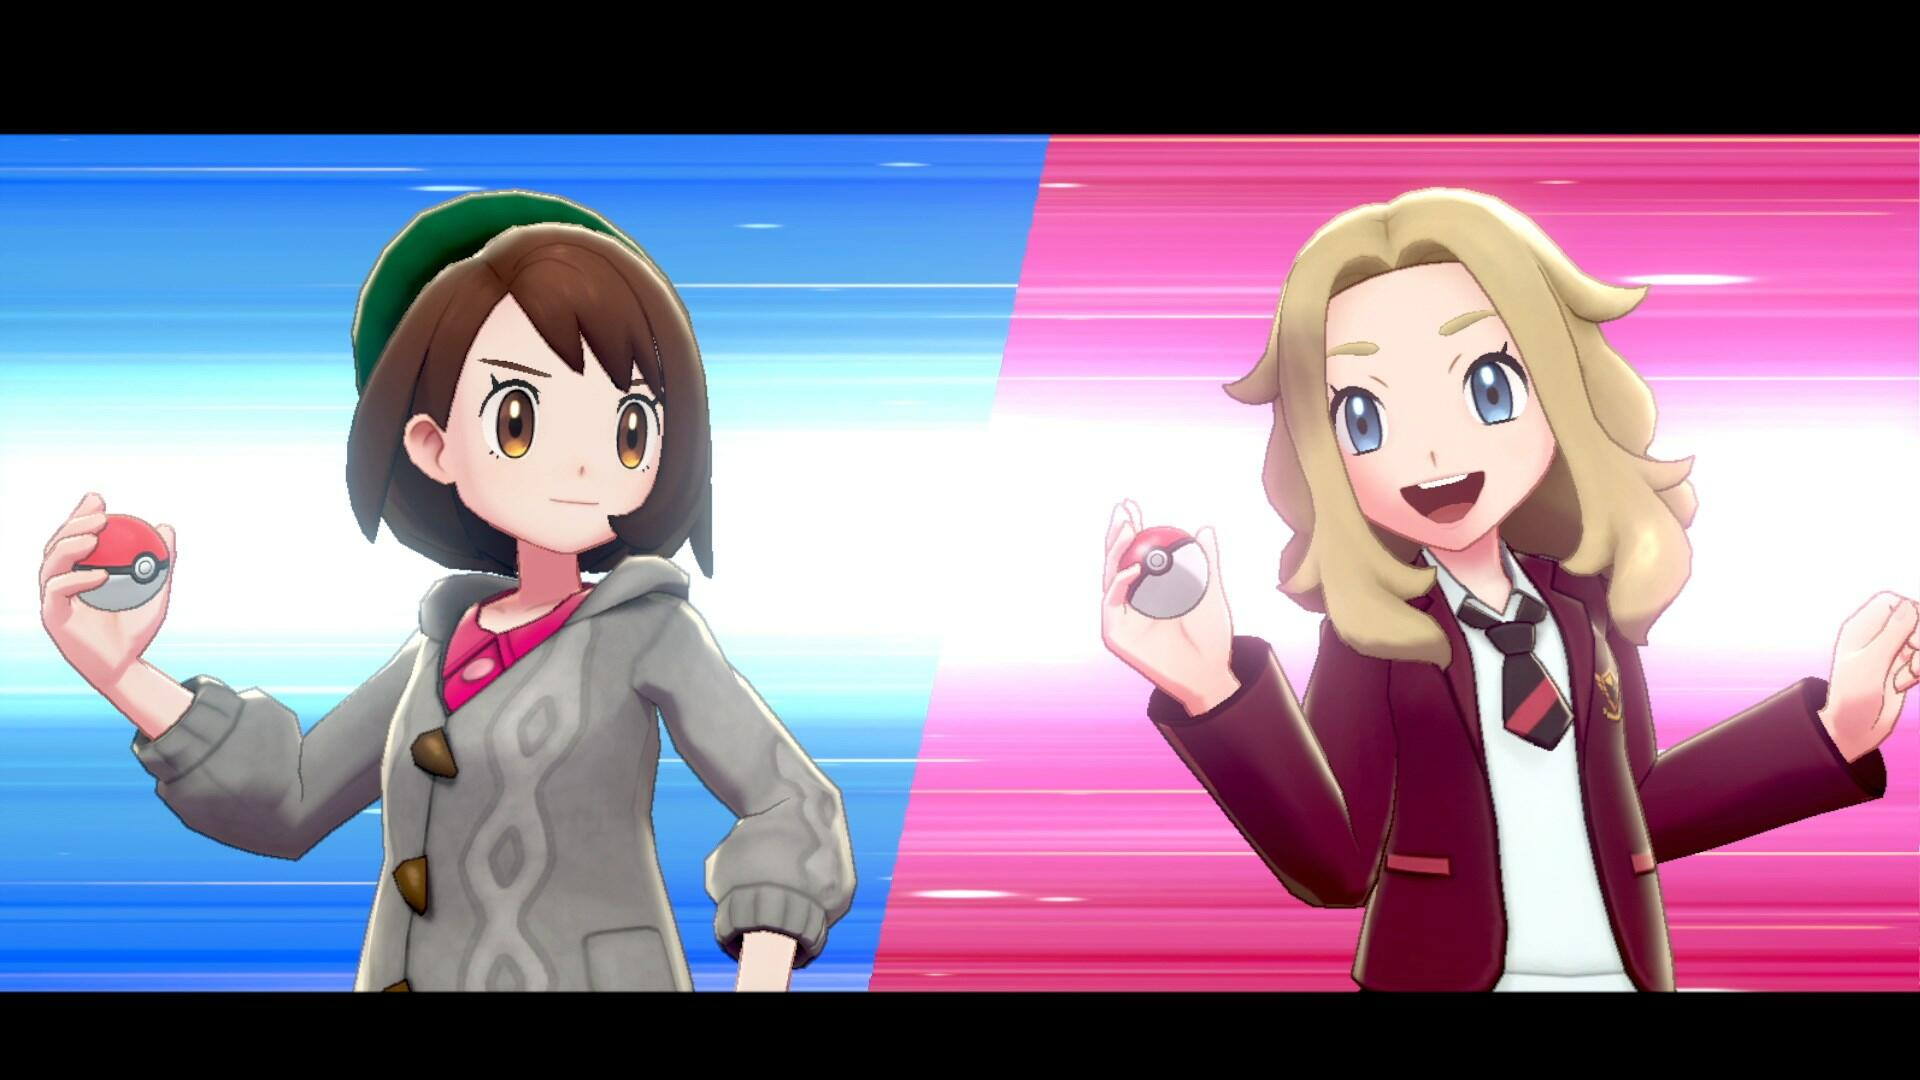 Pokemon Sword and Shield is Being Developed With an Emphasis on Portability